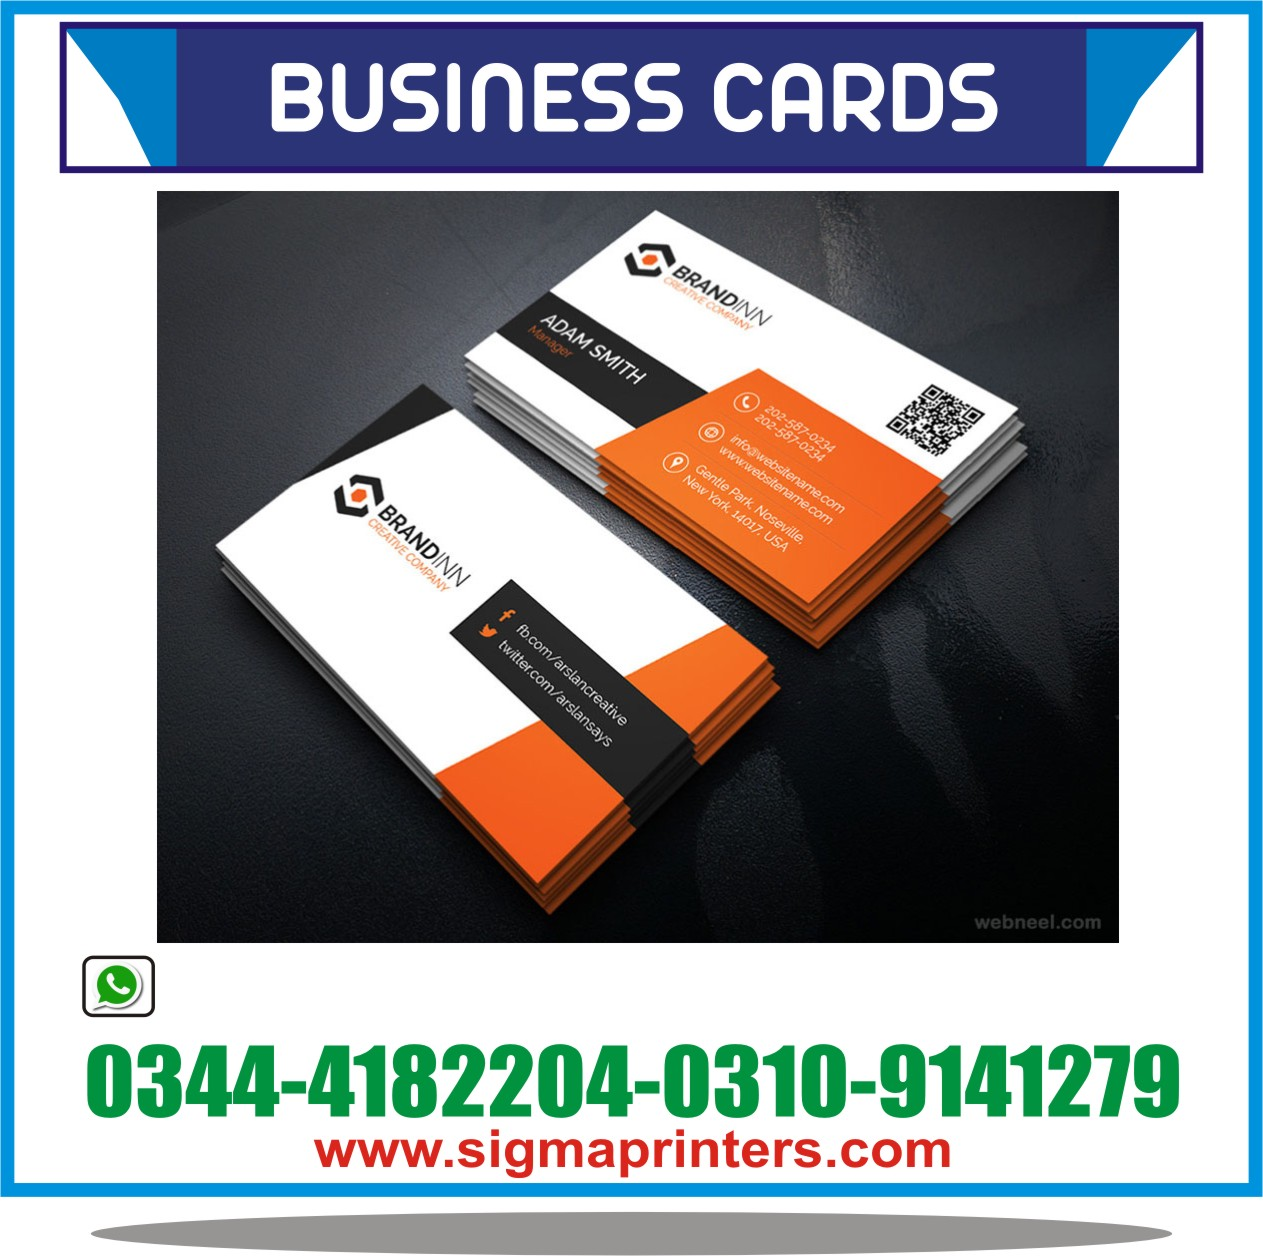 BUSINESS CARDS PRINTING | Sigma Printers